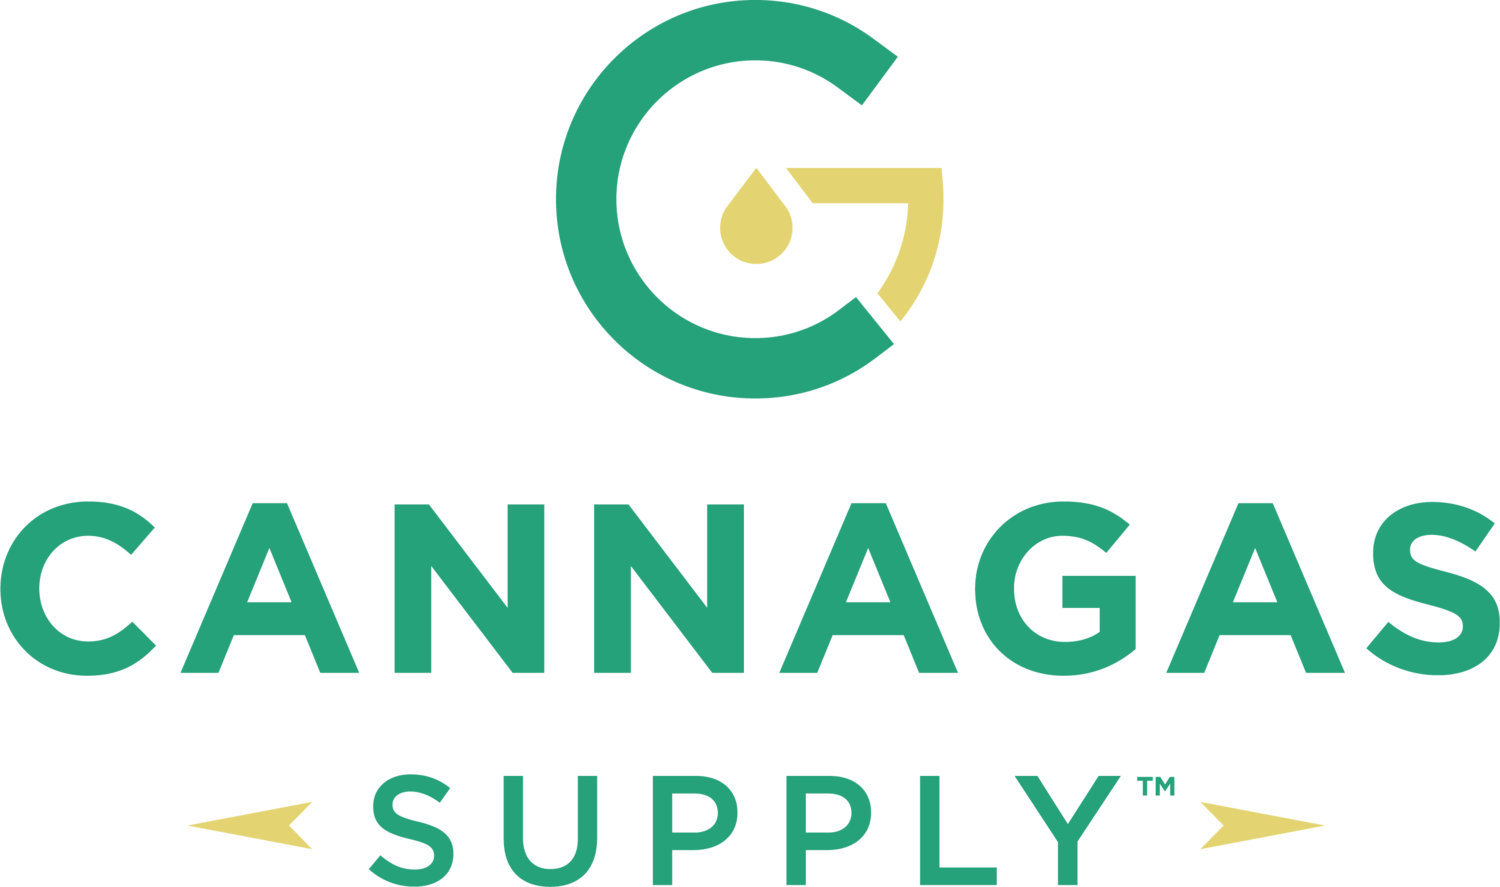 Cannagas supply